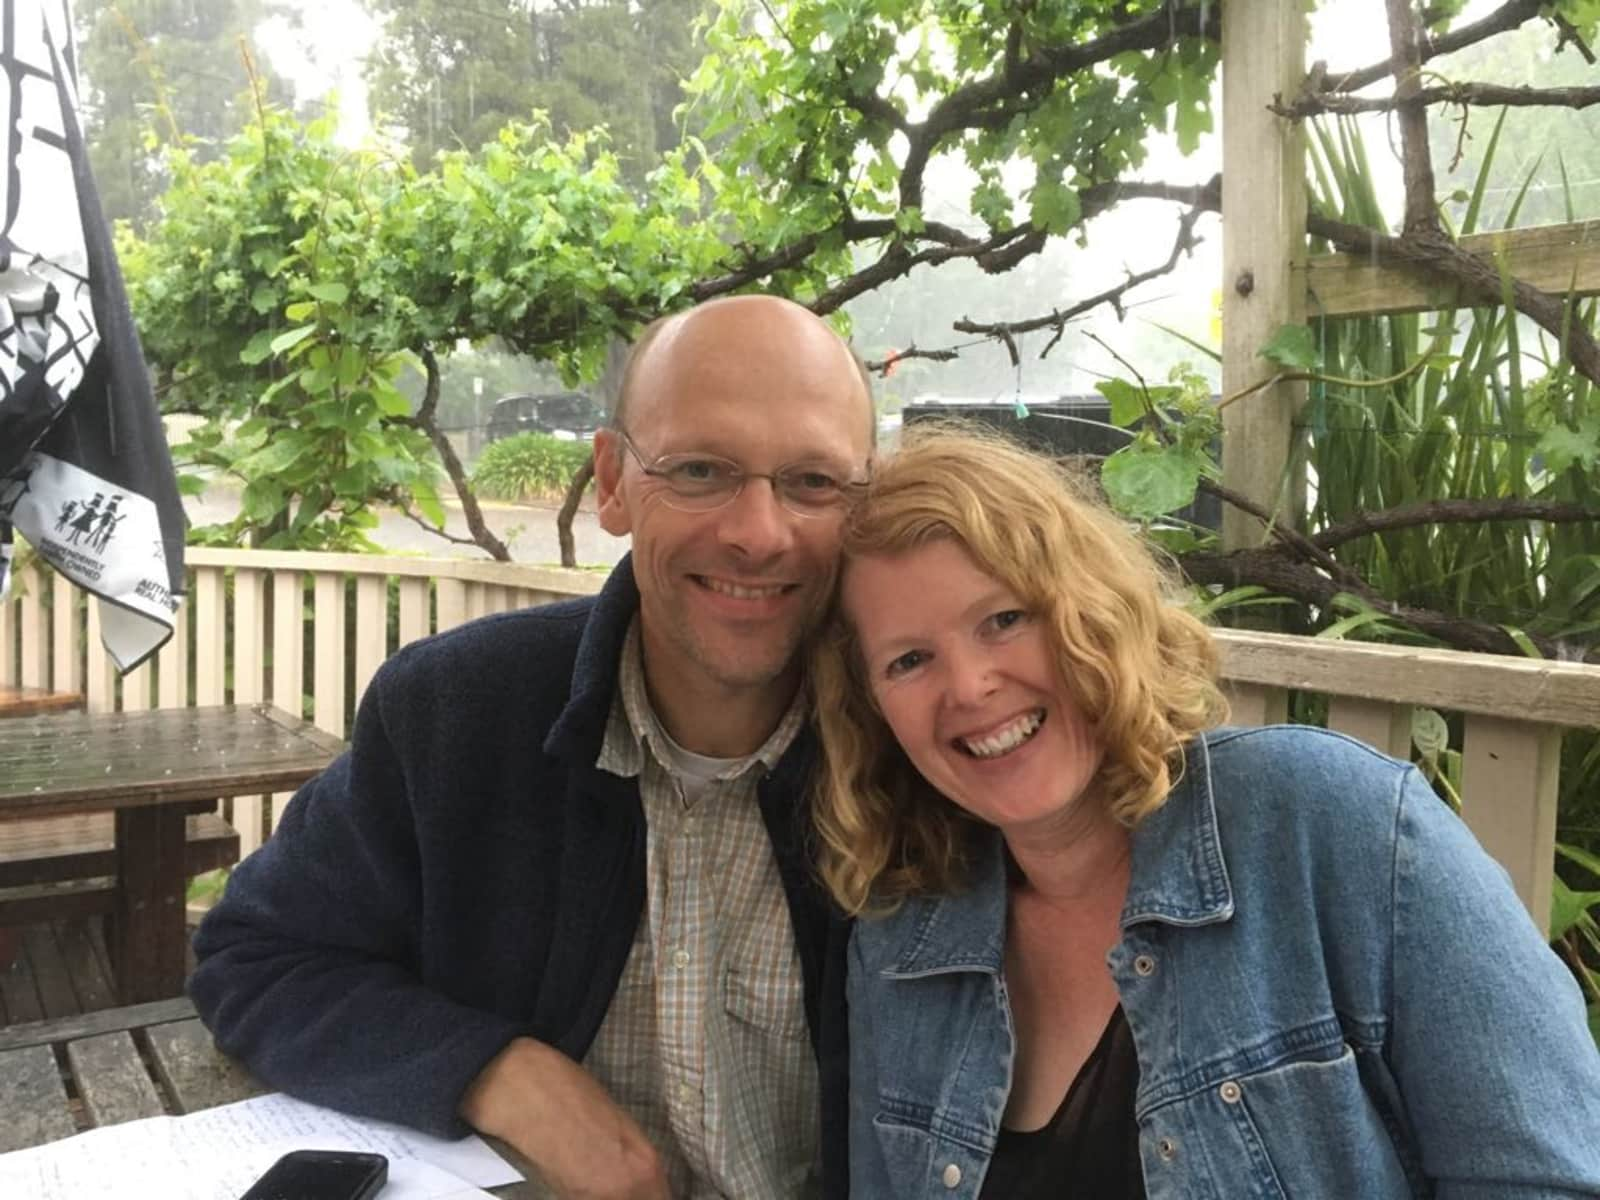 Lesley & Gernot from Warburton, Victoria, Australia